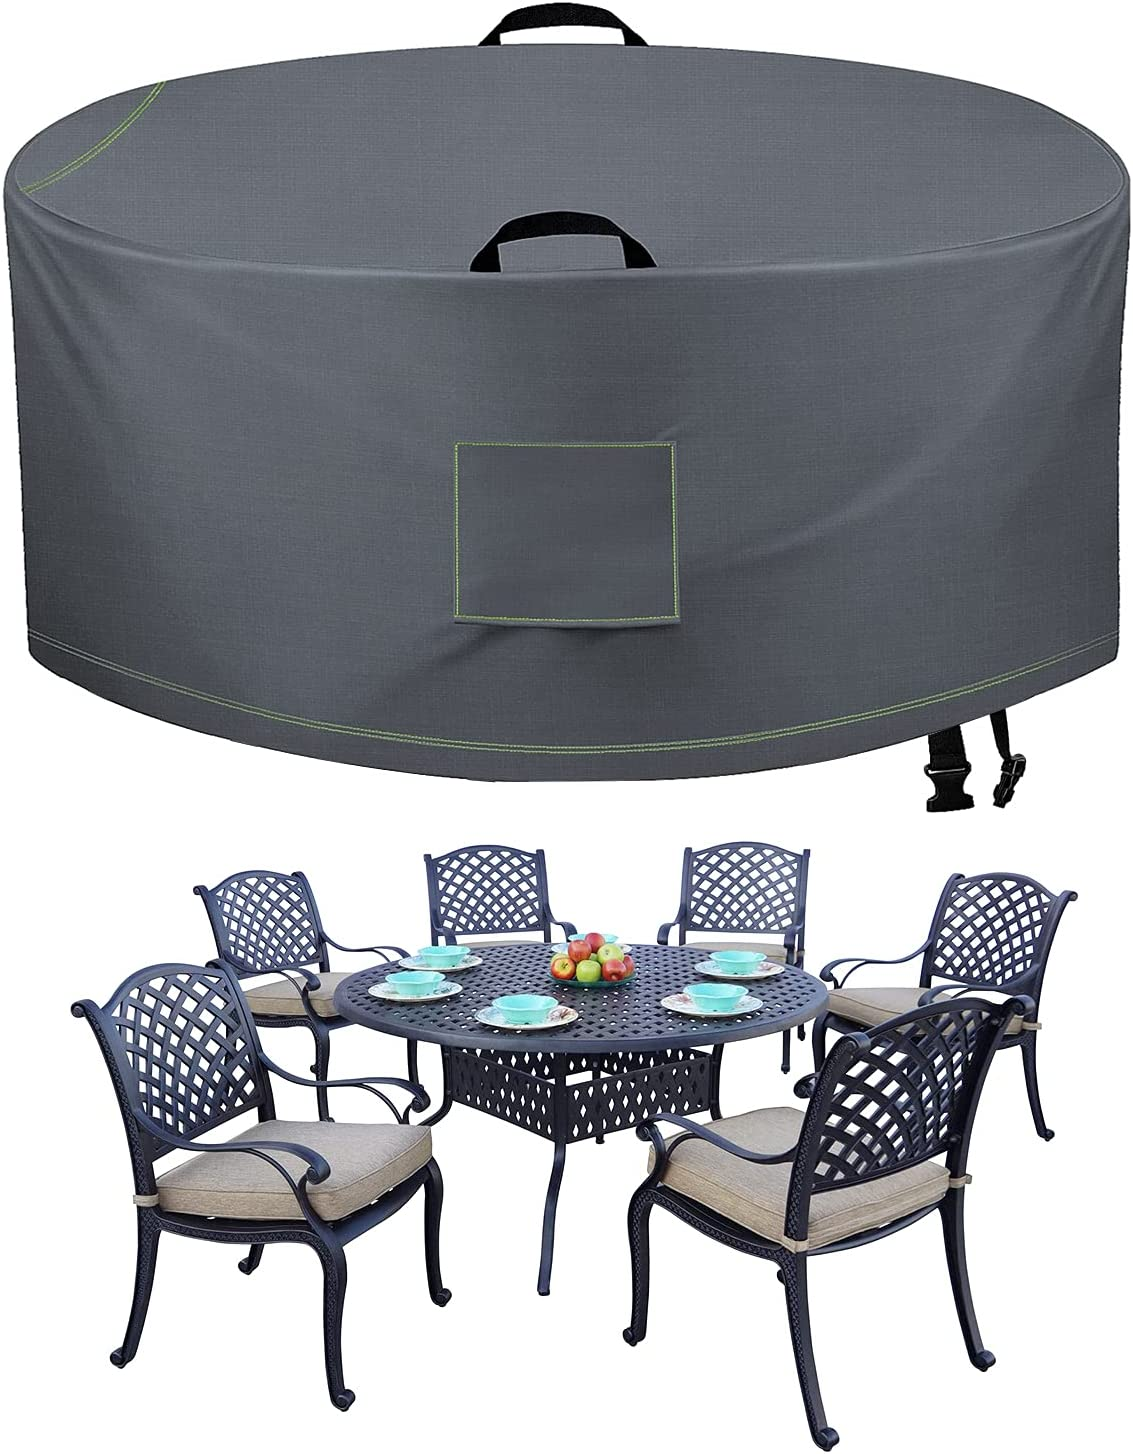 Buy TAOCOCO Outdoor Patio Furniture Covers, 9D Waterproof Table ...